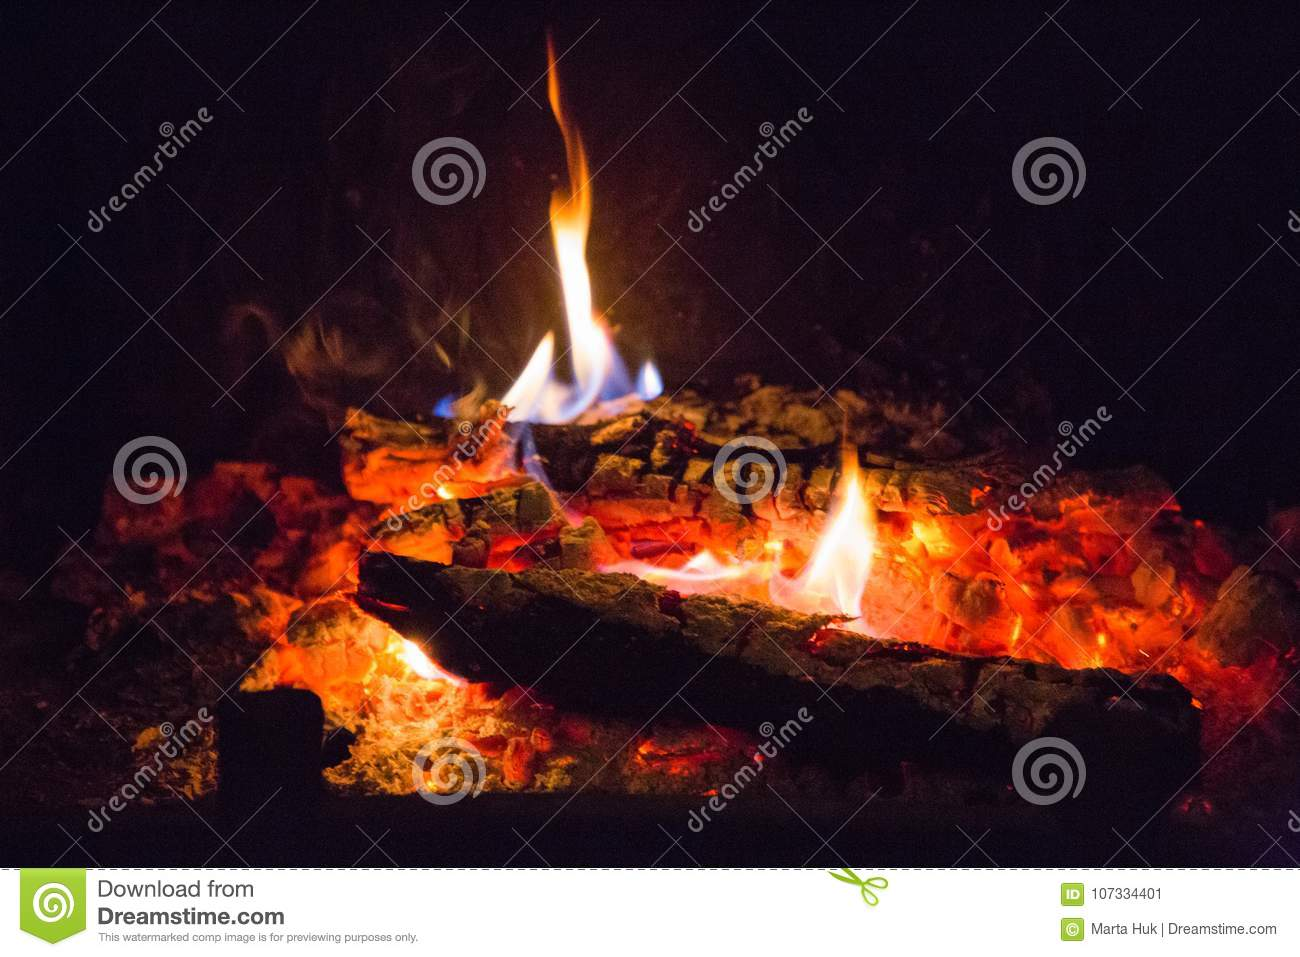 Fire flames with ash in fireplace